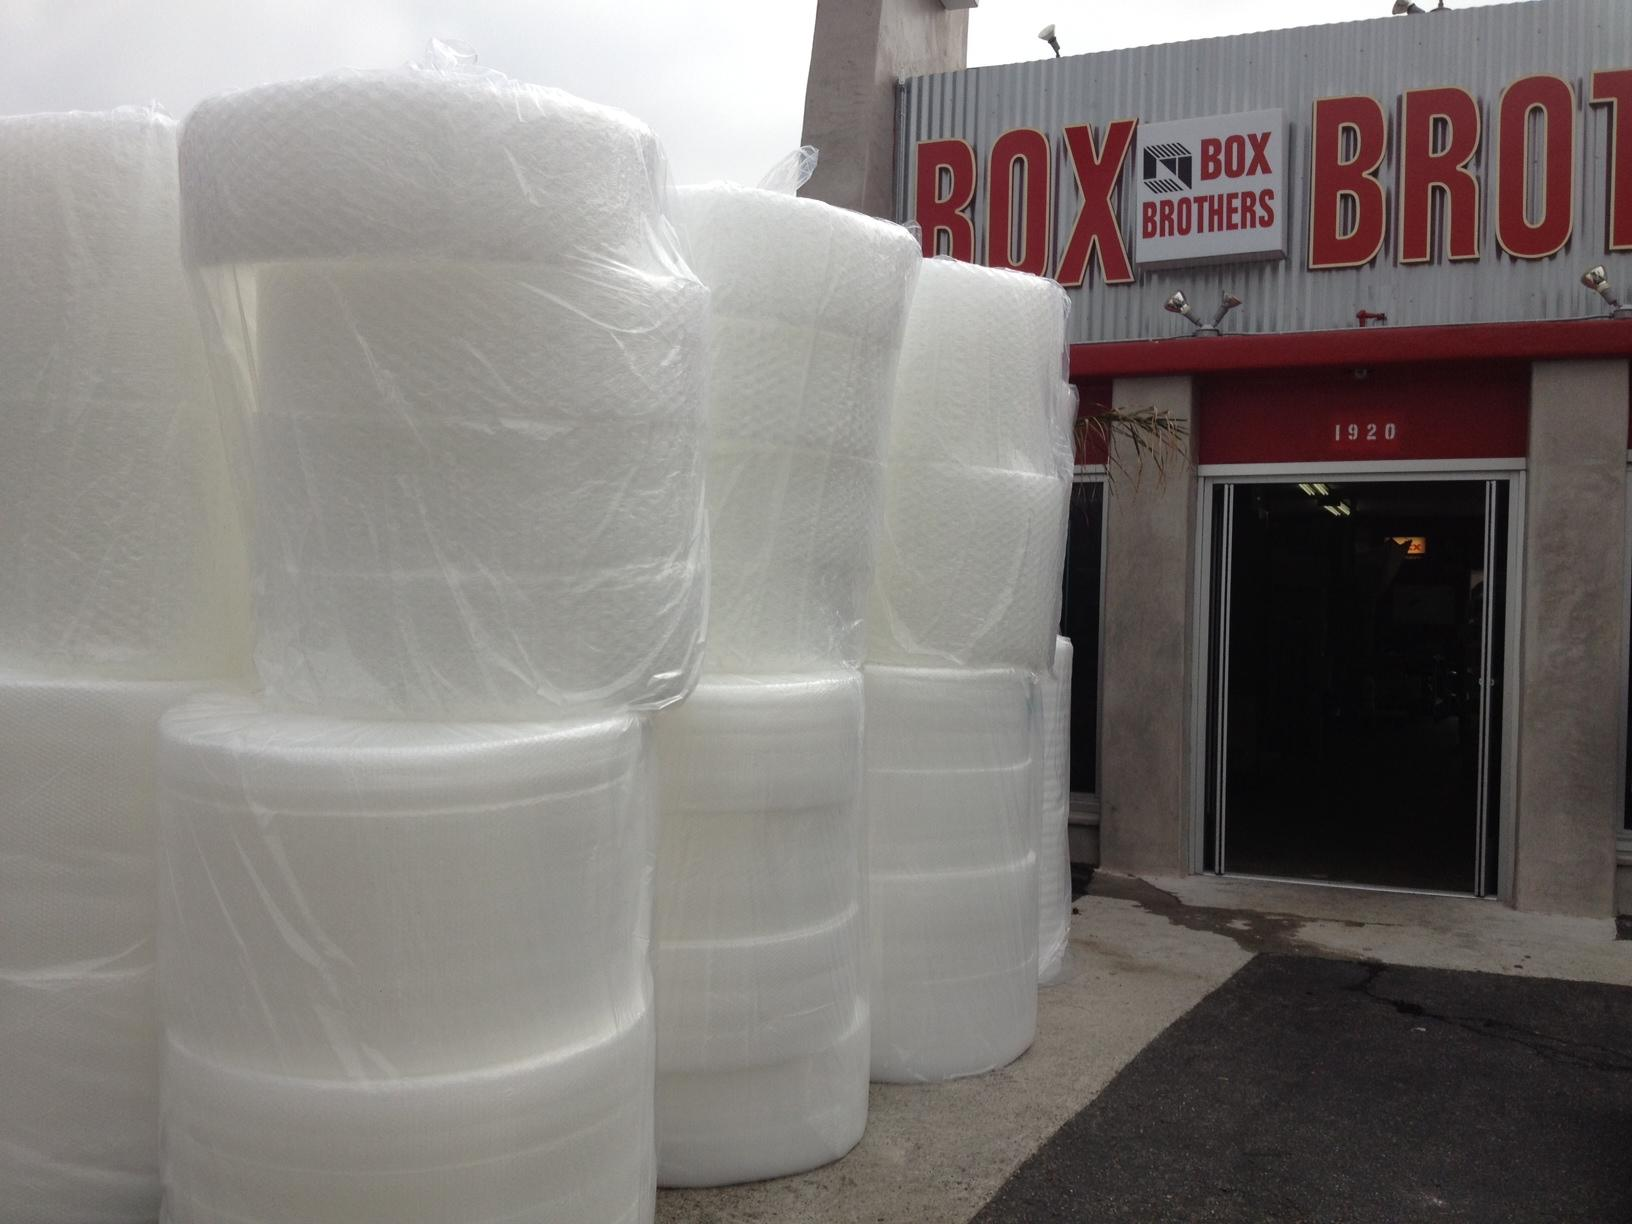 "<a href=""/image/image-galleries/weeks-supply-bubble-wrap/bubble-wrap-door"">Bubble wrap at the door</a>"